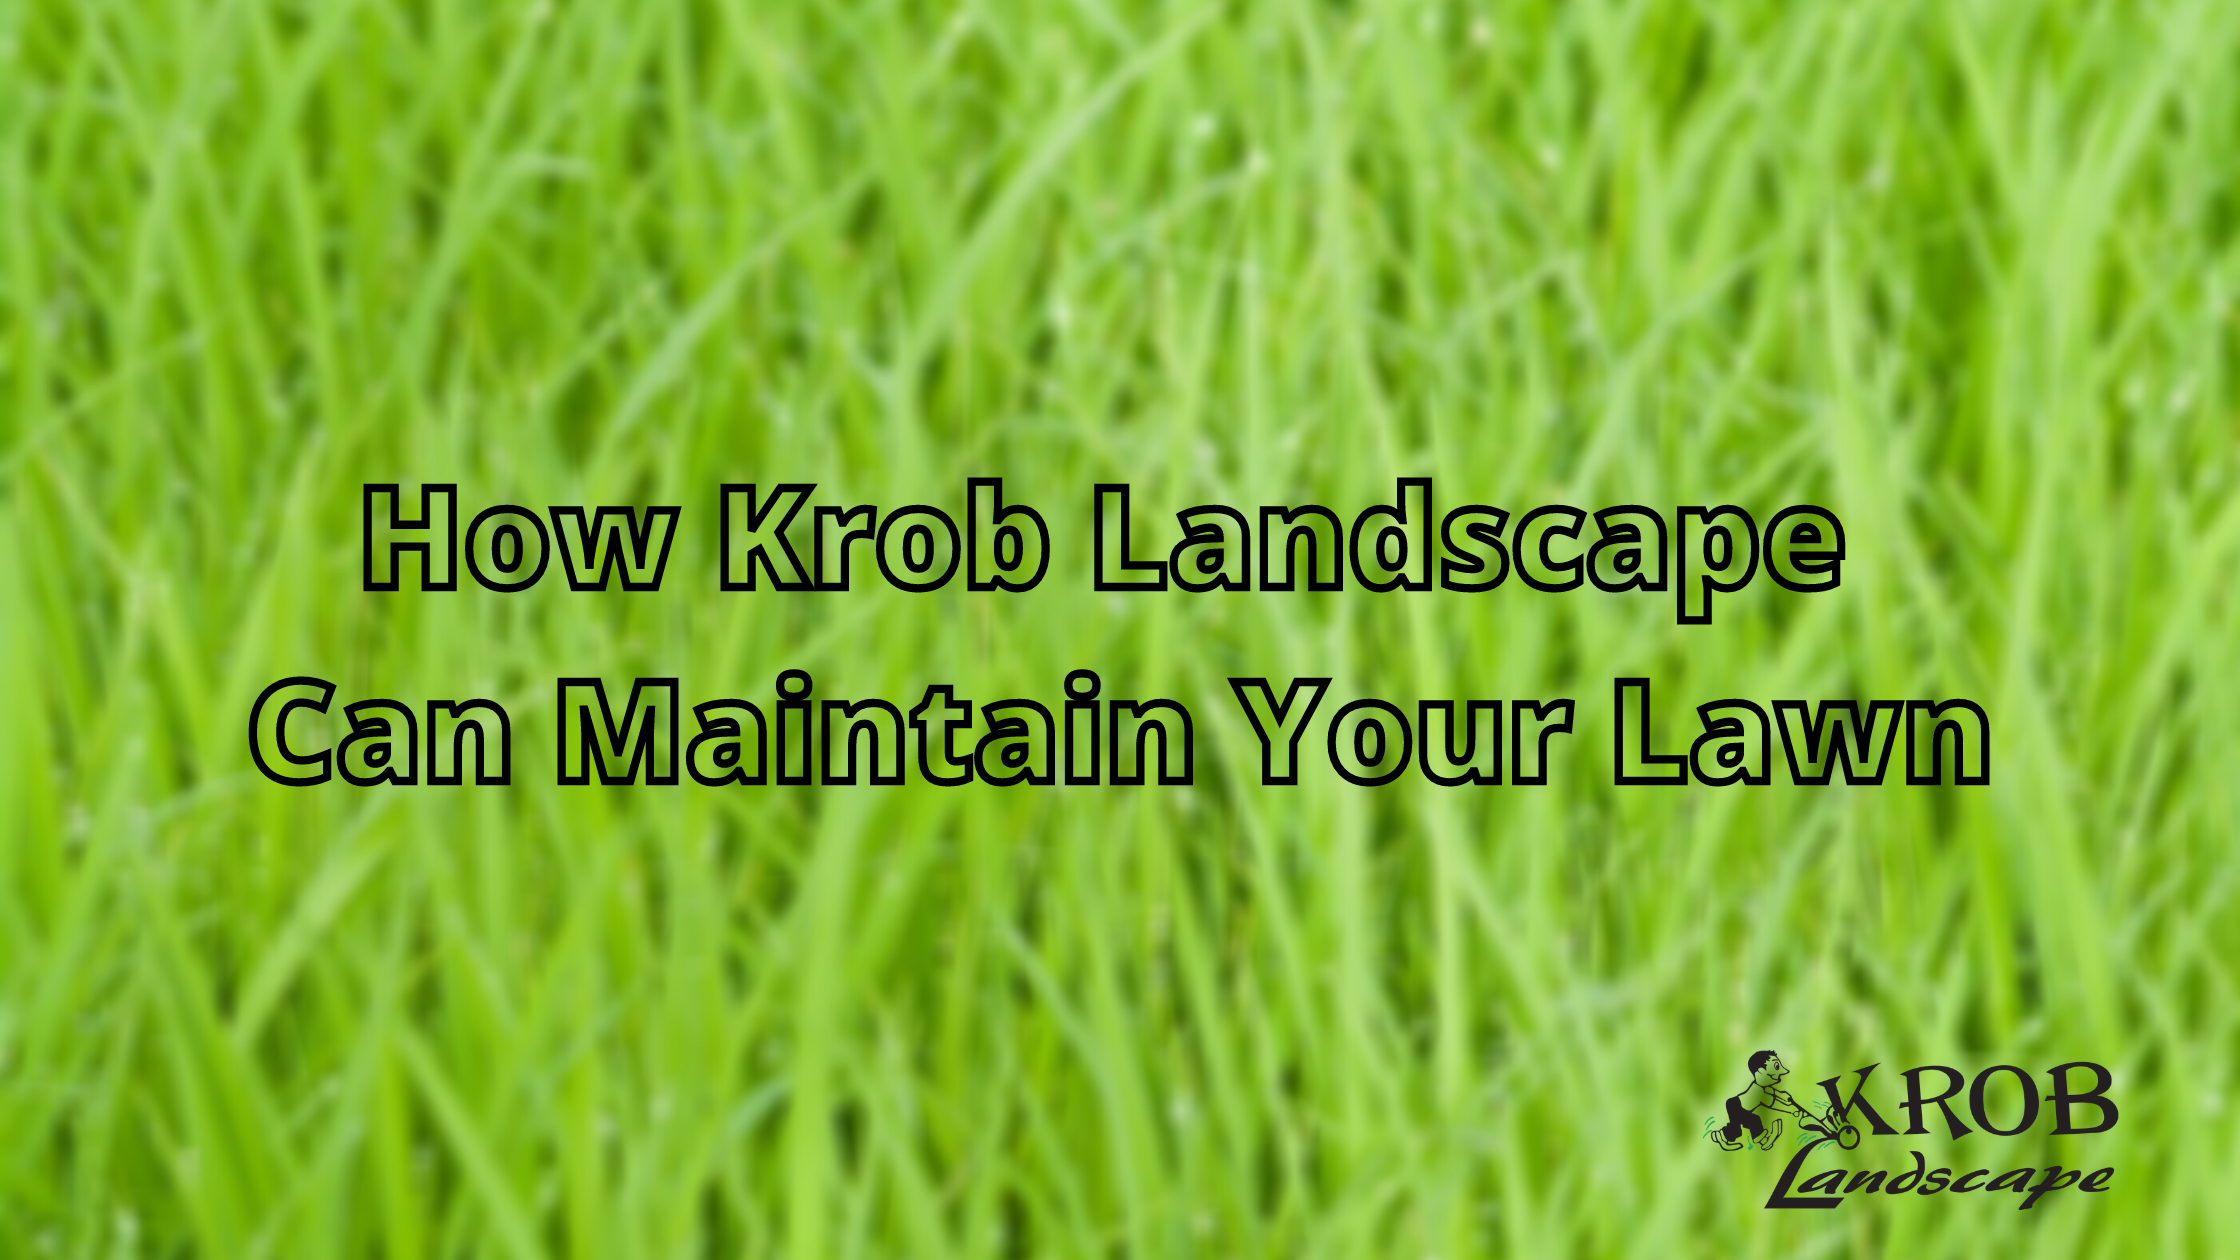 How Krob Landscape Can Maintain Your Lawn.png